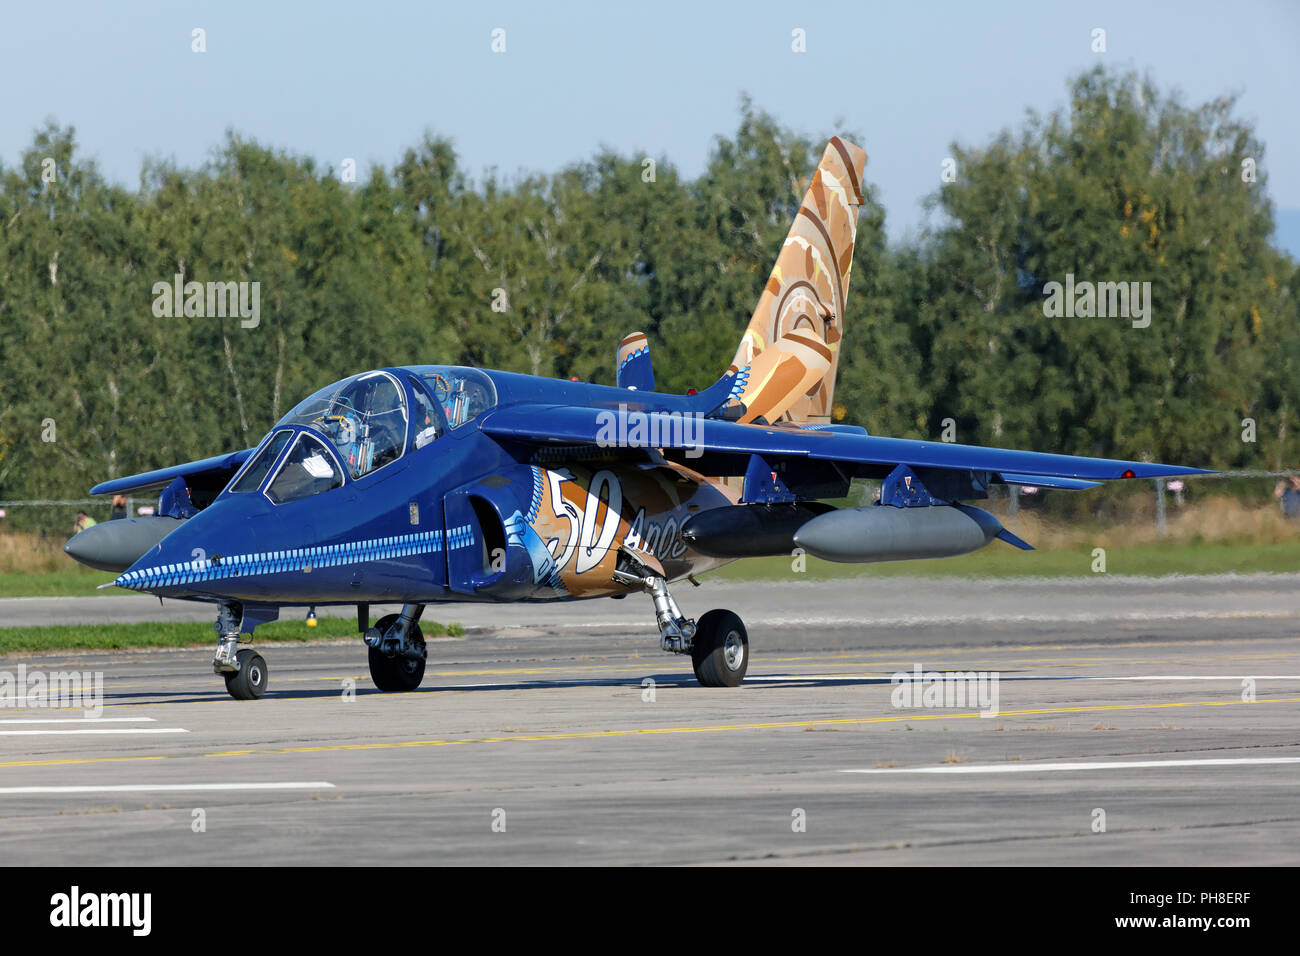 CIAF 2013: Dassault/Dornier Alpha Jet Stock Photo